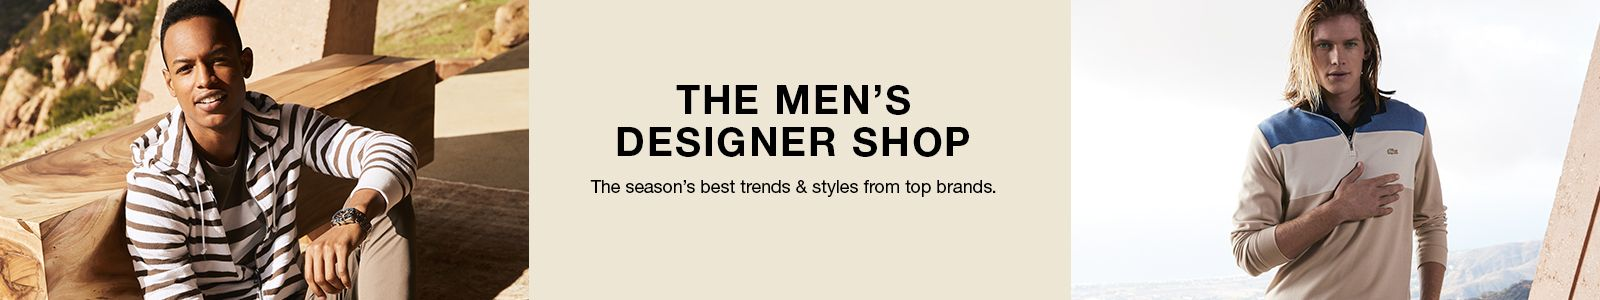 The Men's Designer Shop, The season's best trends and styles from top brands